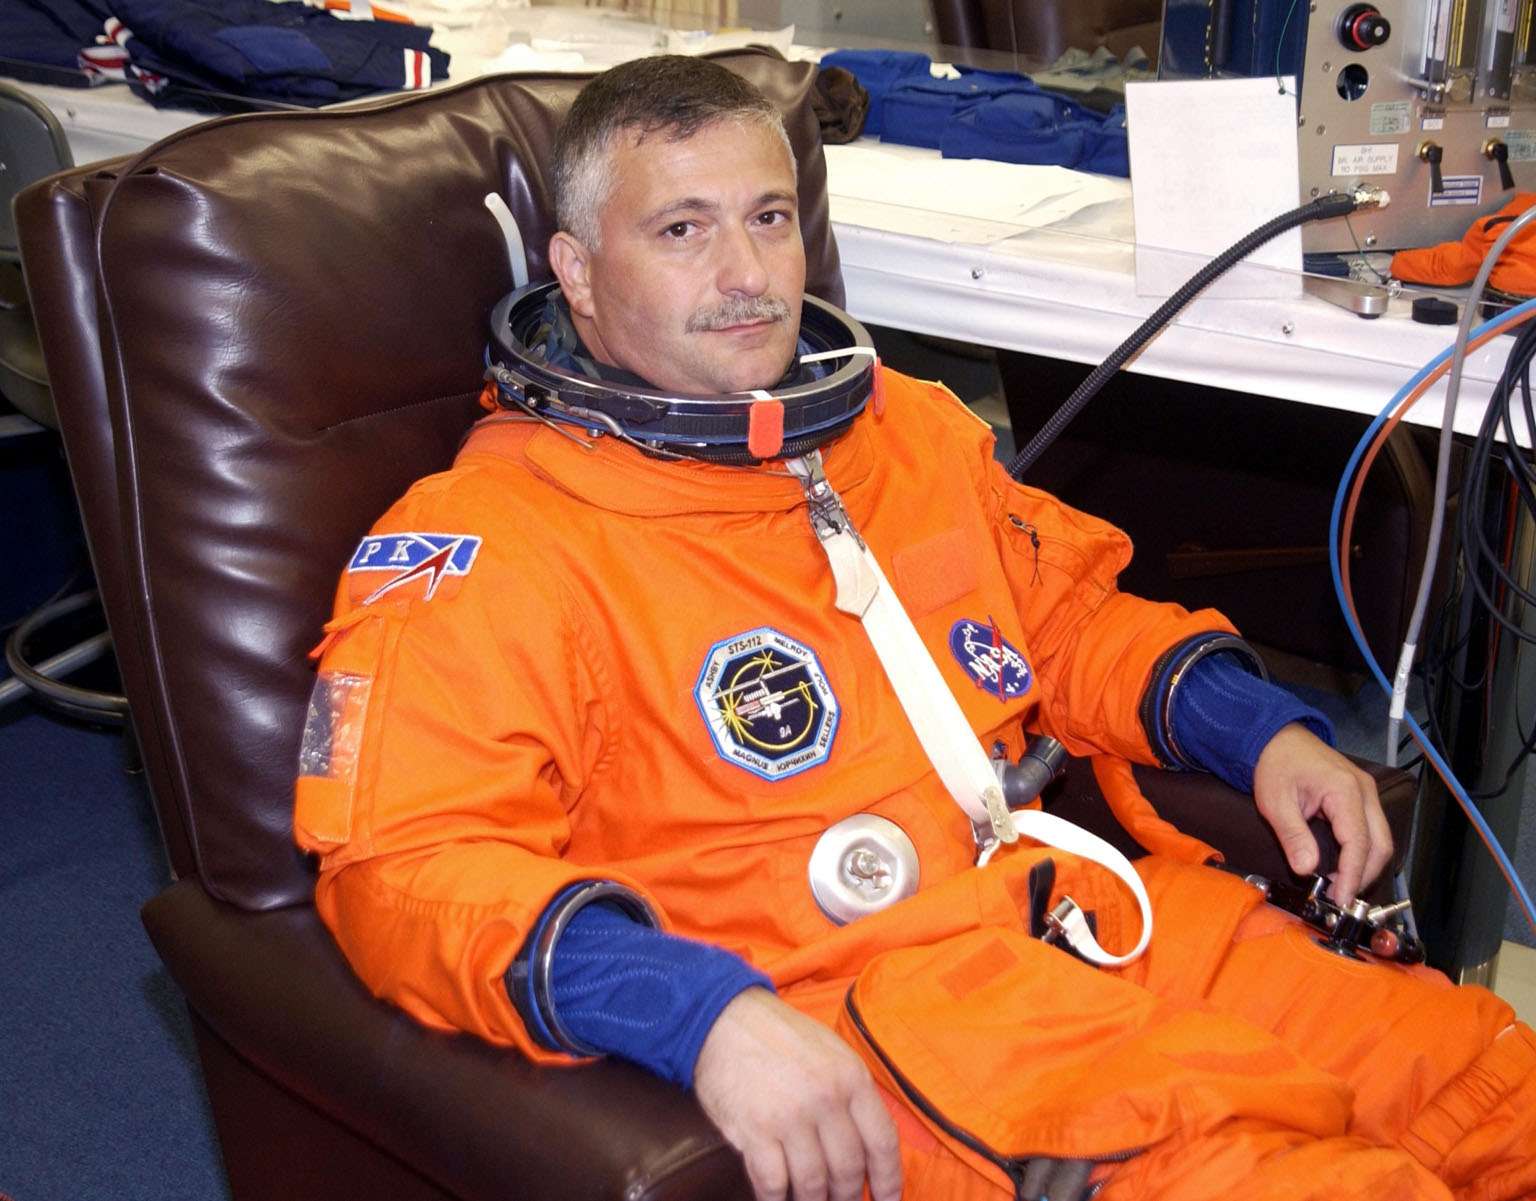 KENNEDY SPACE CENTER, FLA. -- STS-112 Mission Specialist Fyodor Yurchikhin has his launch and entry suit checked for fit in preparation for launch. The suit check is part of Terminal Countdown Demonstration Test activities, which also include emergency egress training and a simulated launch countdown. The mission aboard Space Shuttle Atlantis is scheduled to launch no earlier than Oct. 2, between 2 and 6 p.m. EDT. STS-112 is the 15th assembly mission to the International Space Station. Atlantis will be carrying the S1 Integrated Truss Structure, the first starboard truss segment. The S1 will be attached to the central truss segment, S0, during the 11-day mission. Yurchikhin will assist Pilot Pamela Melroy in preparing the spacewalk hardware for the three scheduled EVAs. STS-112 is Yurchikhin's first Shuttle flight.